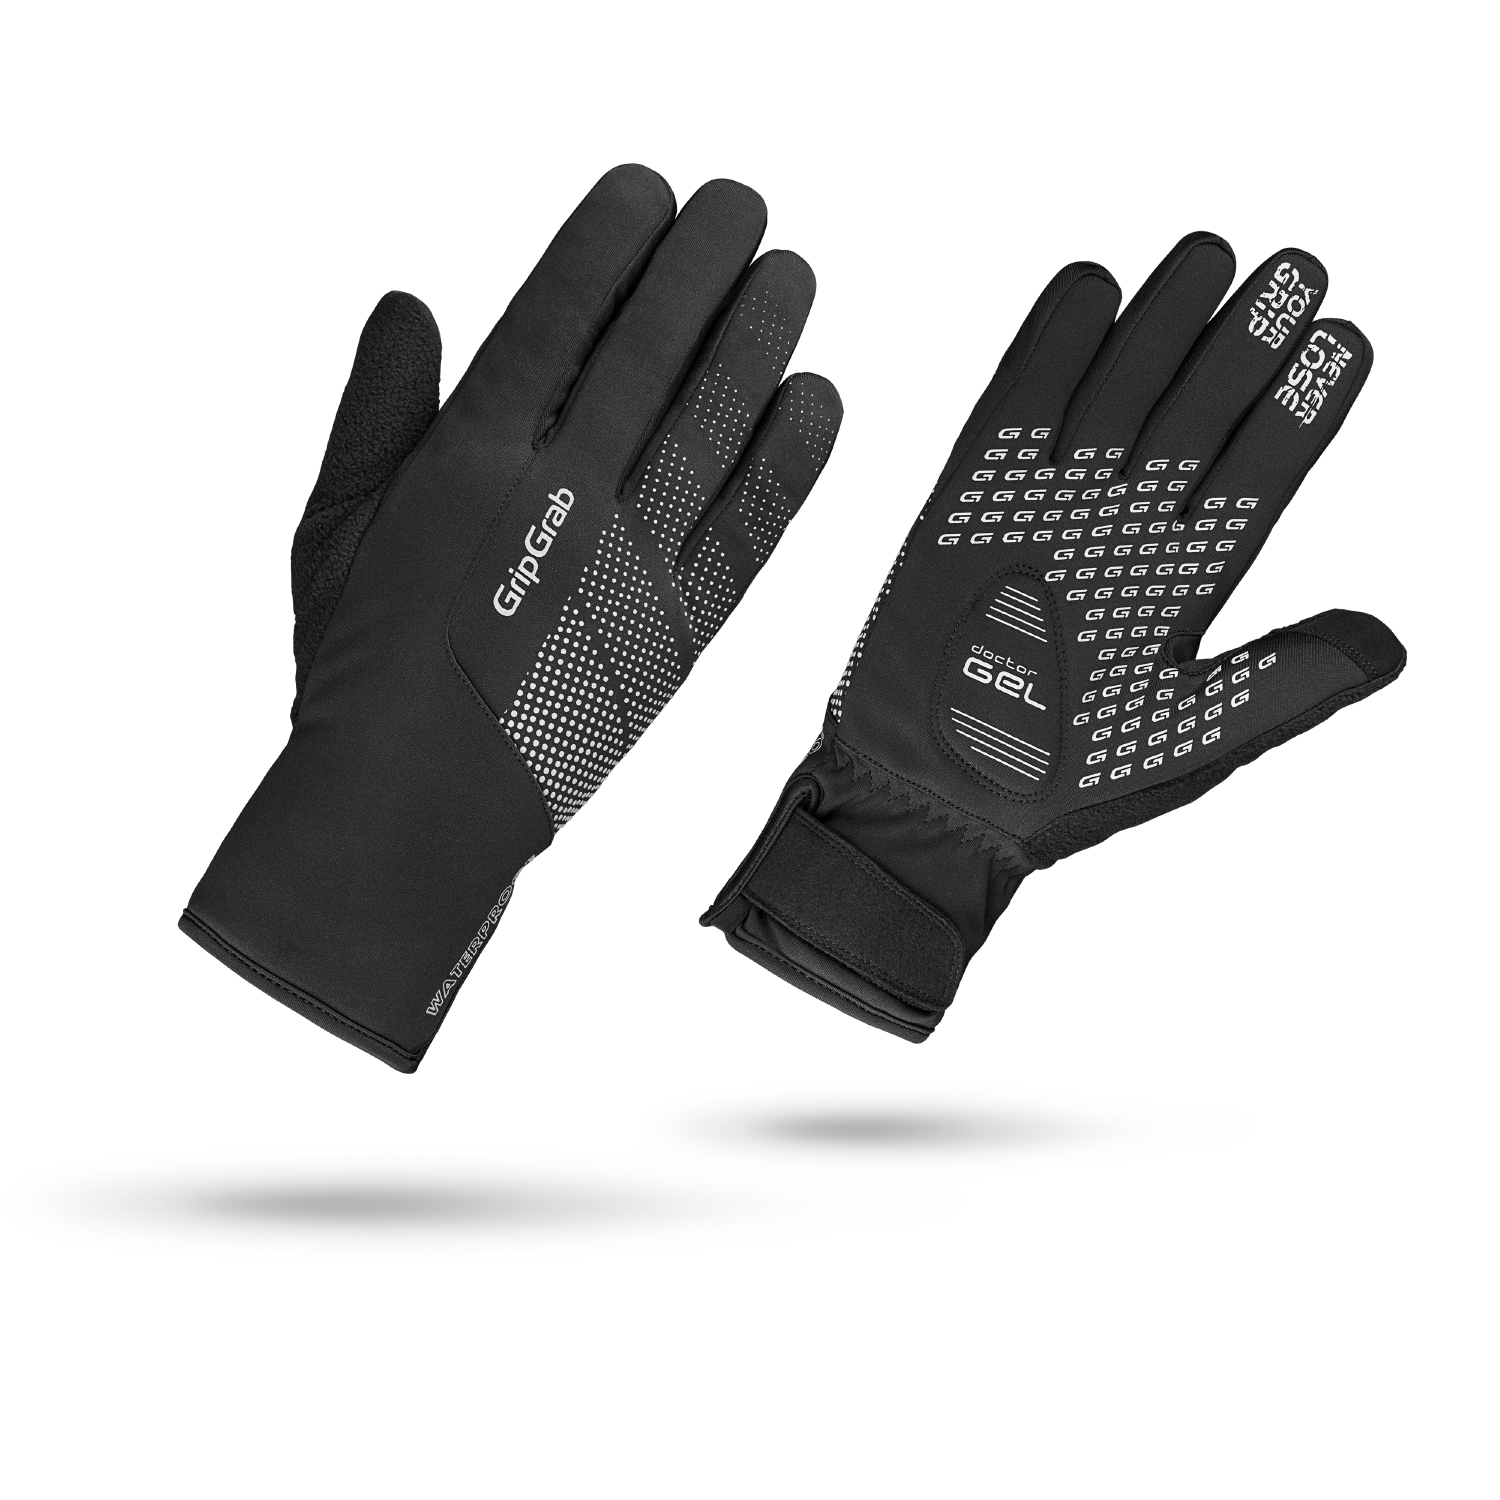 GripGrab Ride Waterproff - Vind og vandtæt vinter cykelhandske - Sort | Gloves